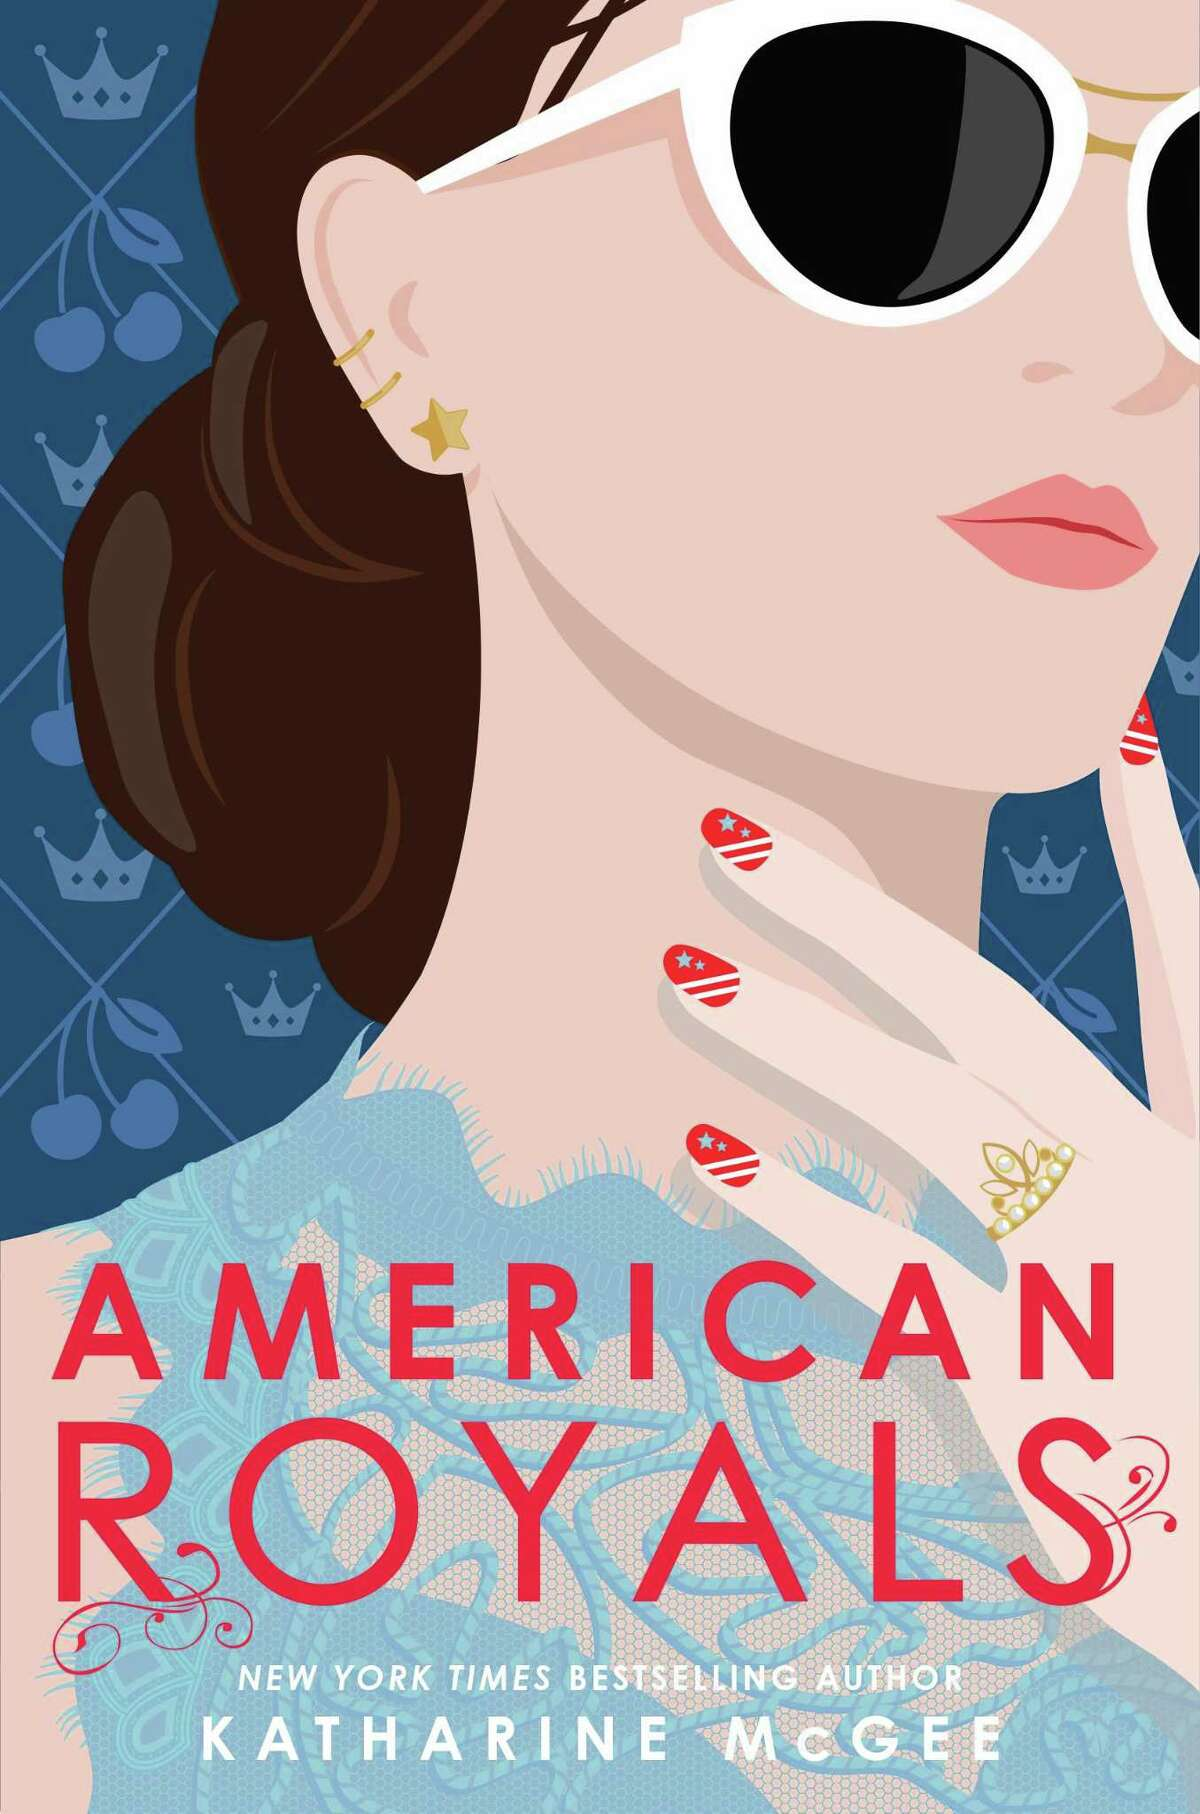 American Royals, by Houston native Katharine McGee was published by Random House this September.